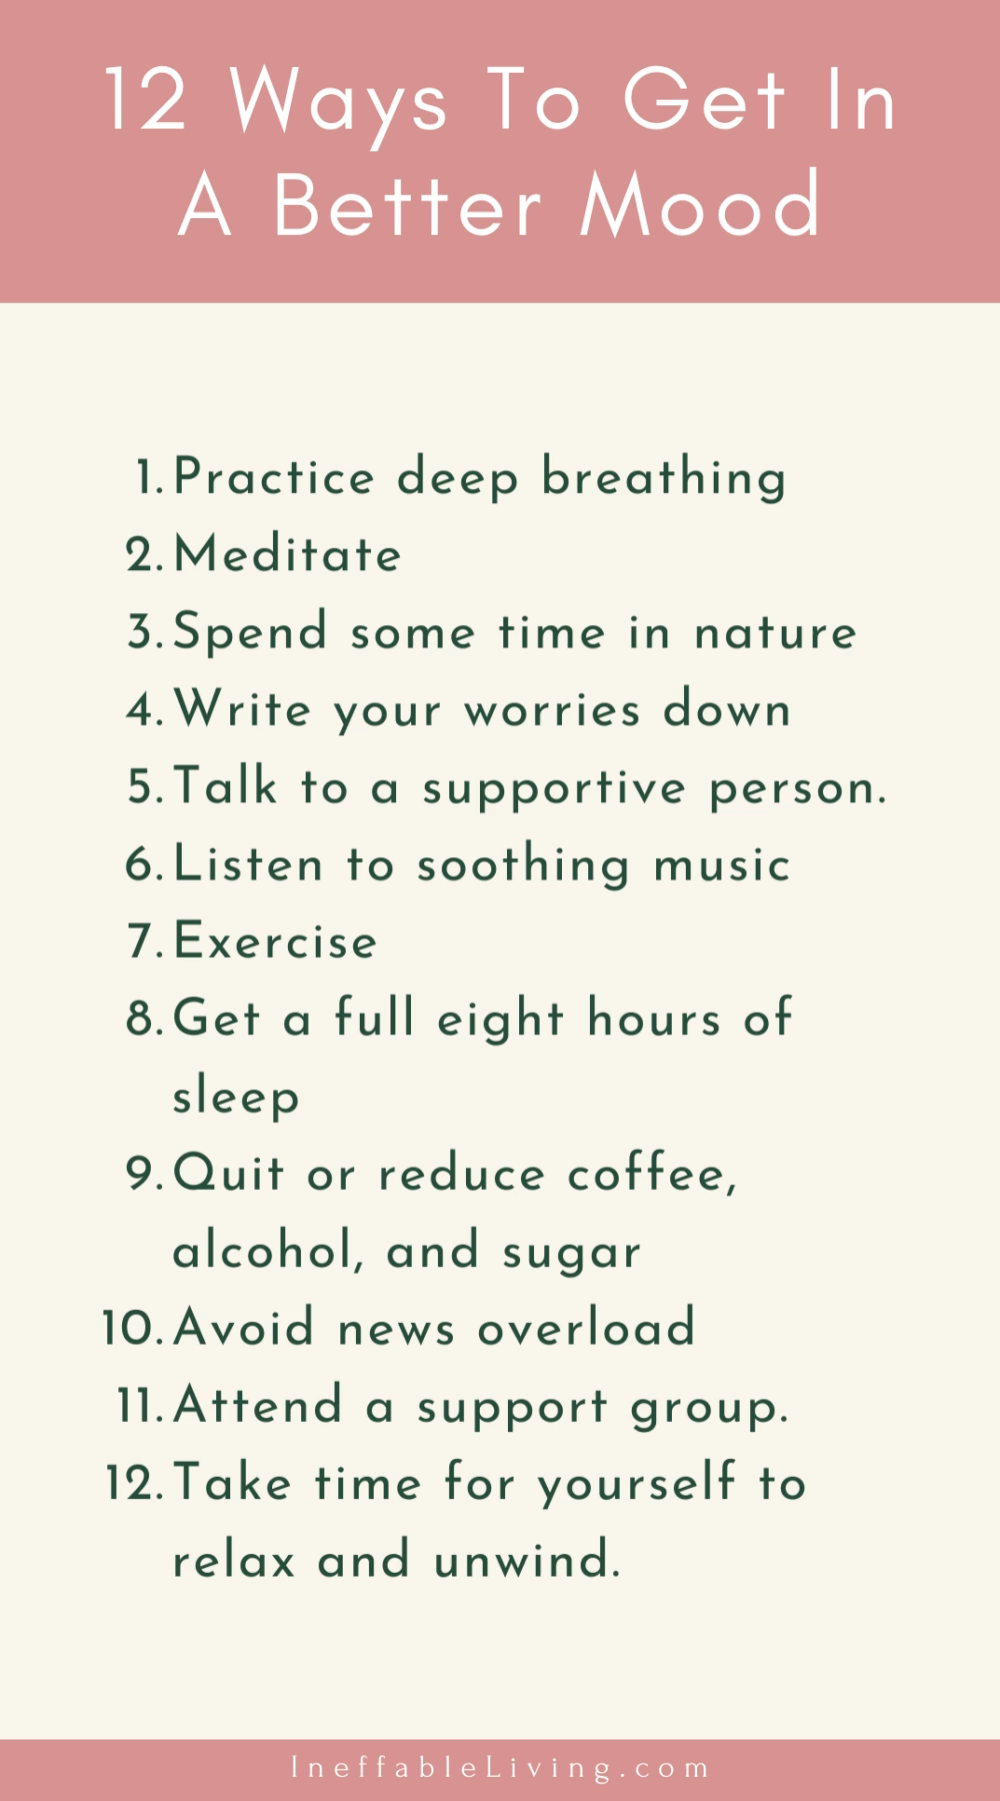 12 Ways To Get In A Better Mood (Mental Health Awareness Month)